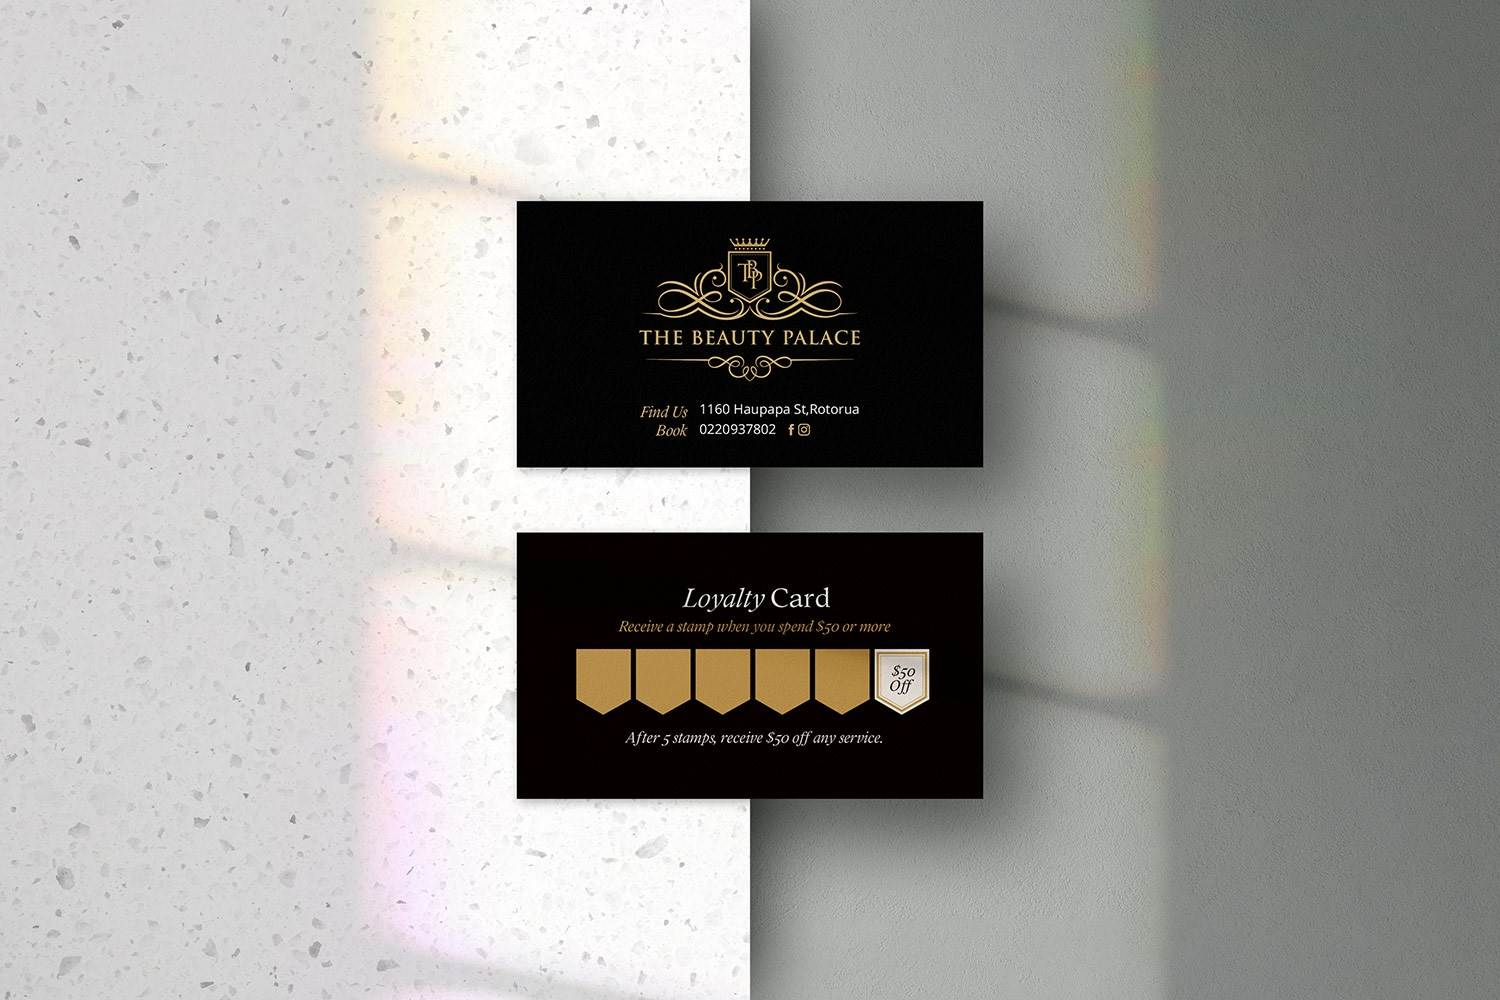 Loyalty card design Rotorua - The Beauty Palace